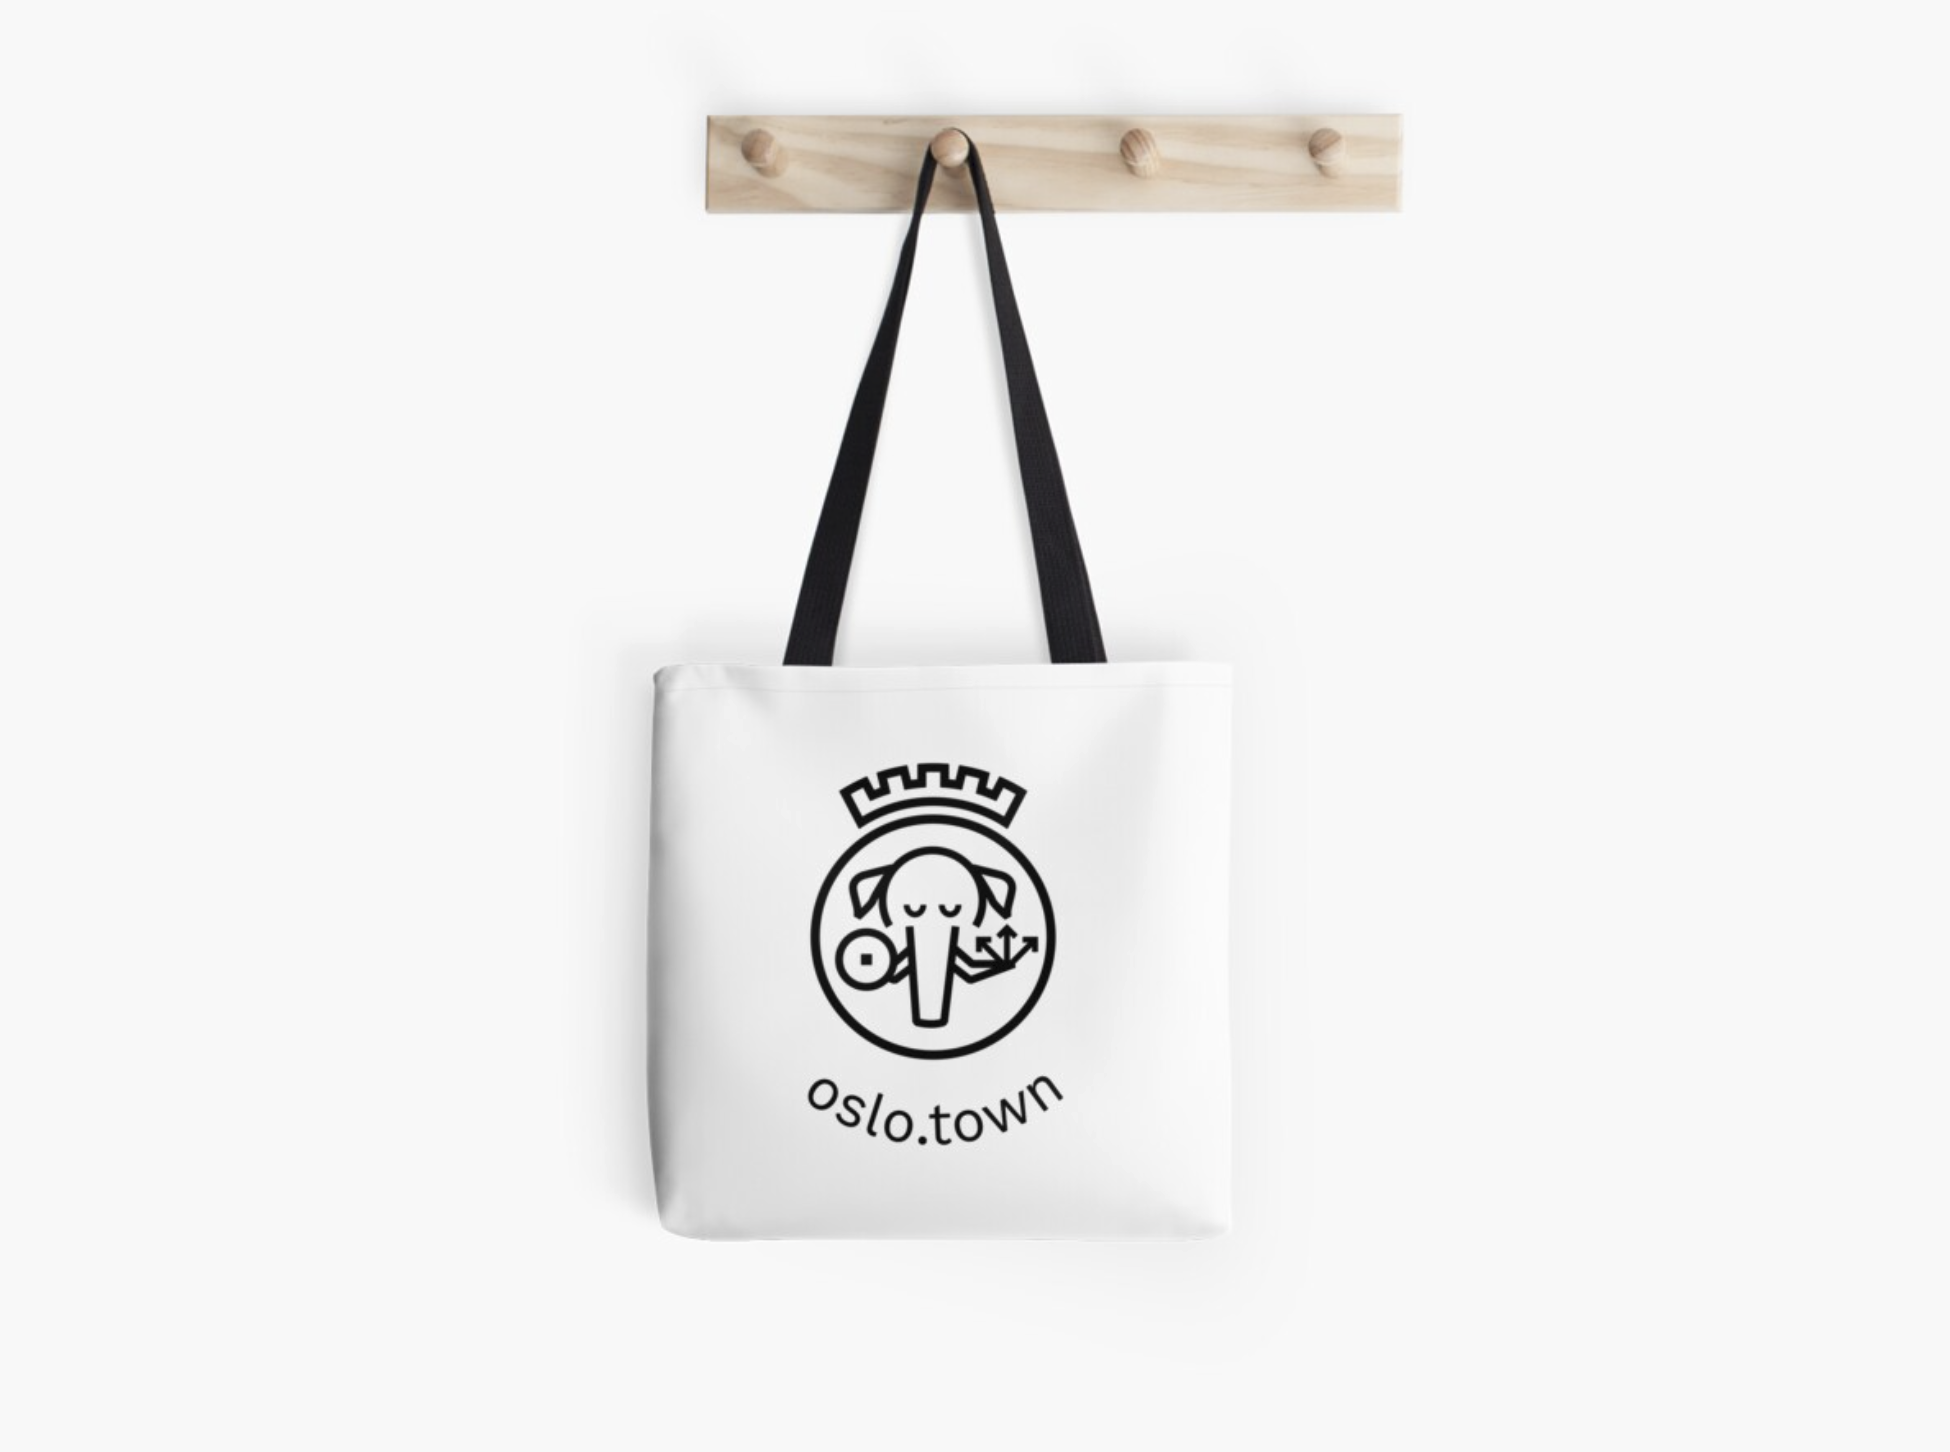 A photo of the oslo.town logo on a tote bag